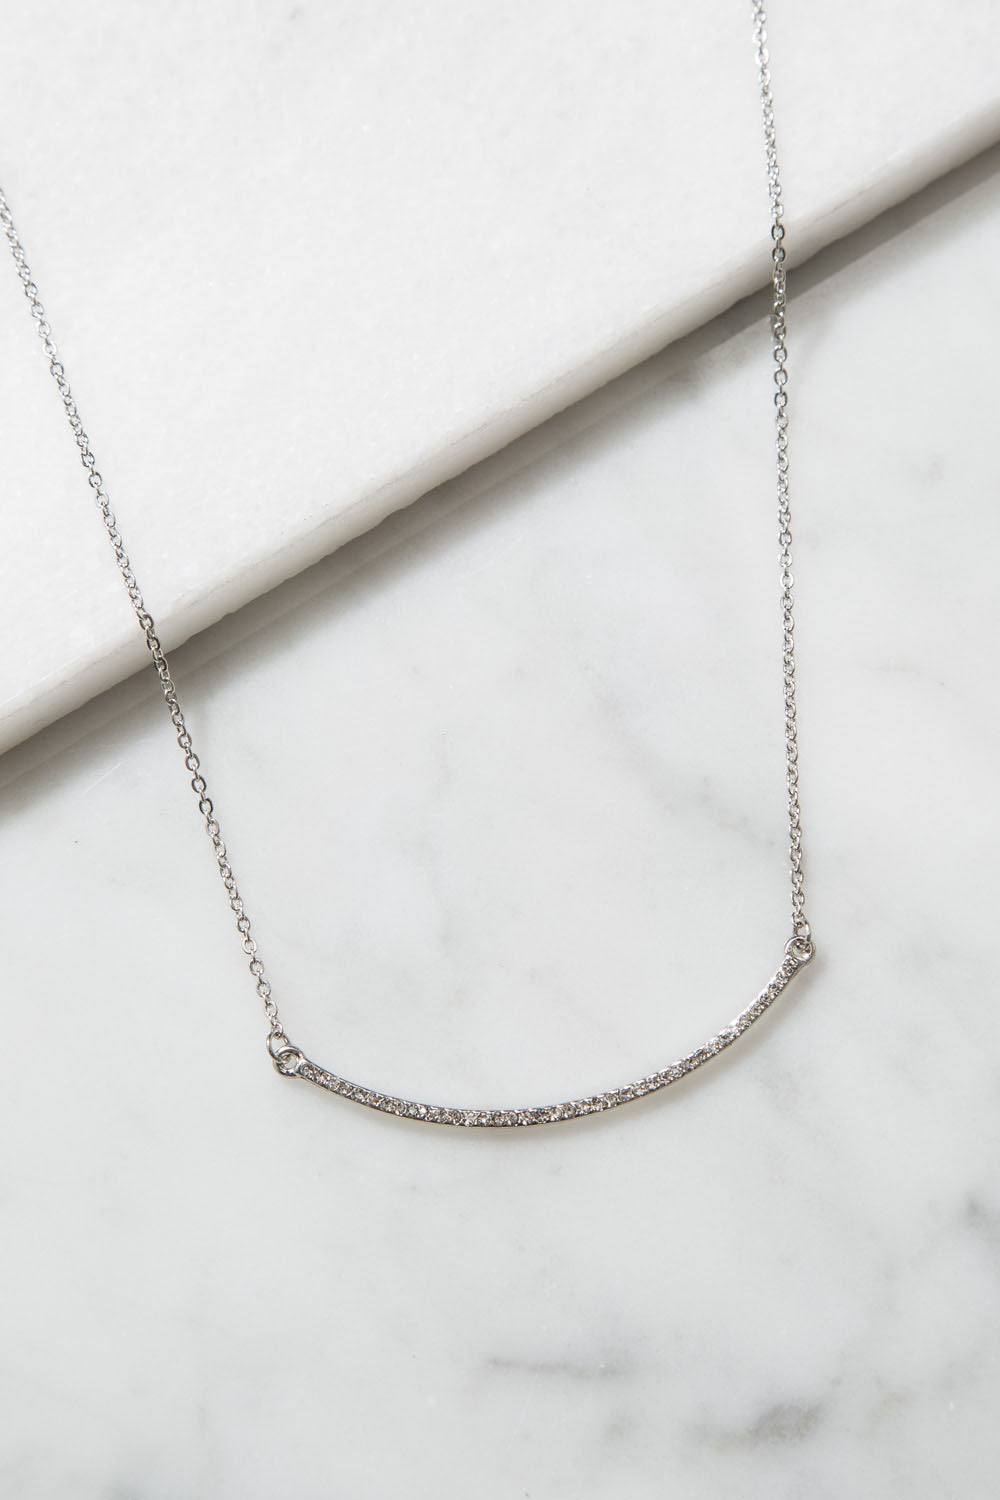 Type 2 Starline Necklace